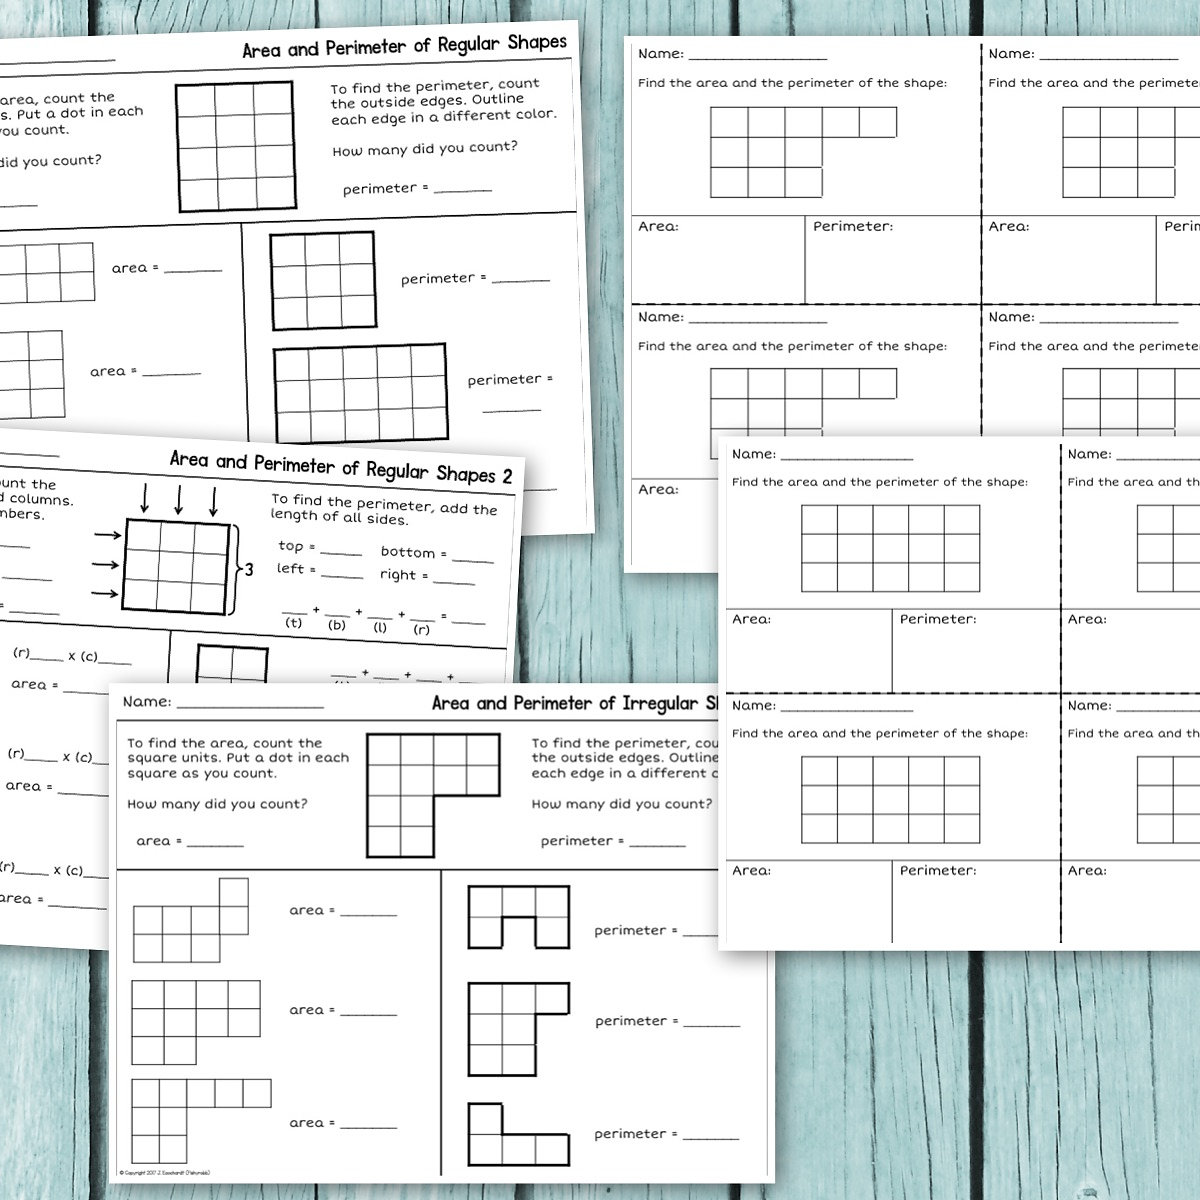 Fishyrobb Teaching Ideas and Resources – Area and Perimeter of Irregular Shapes Worksheets